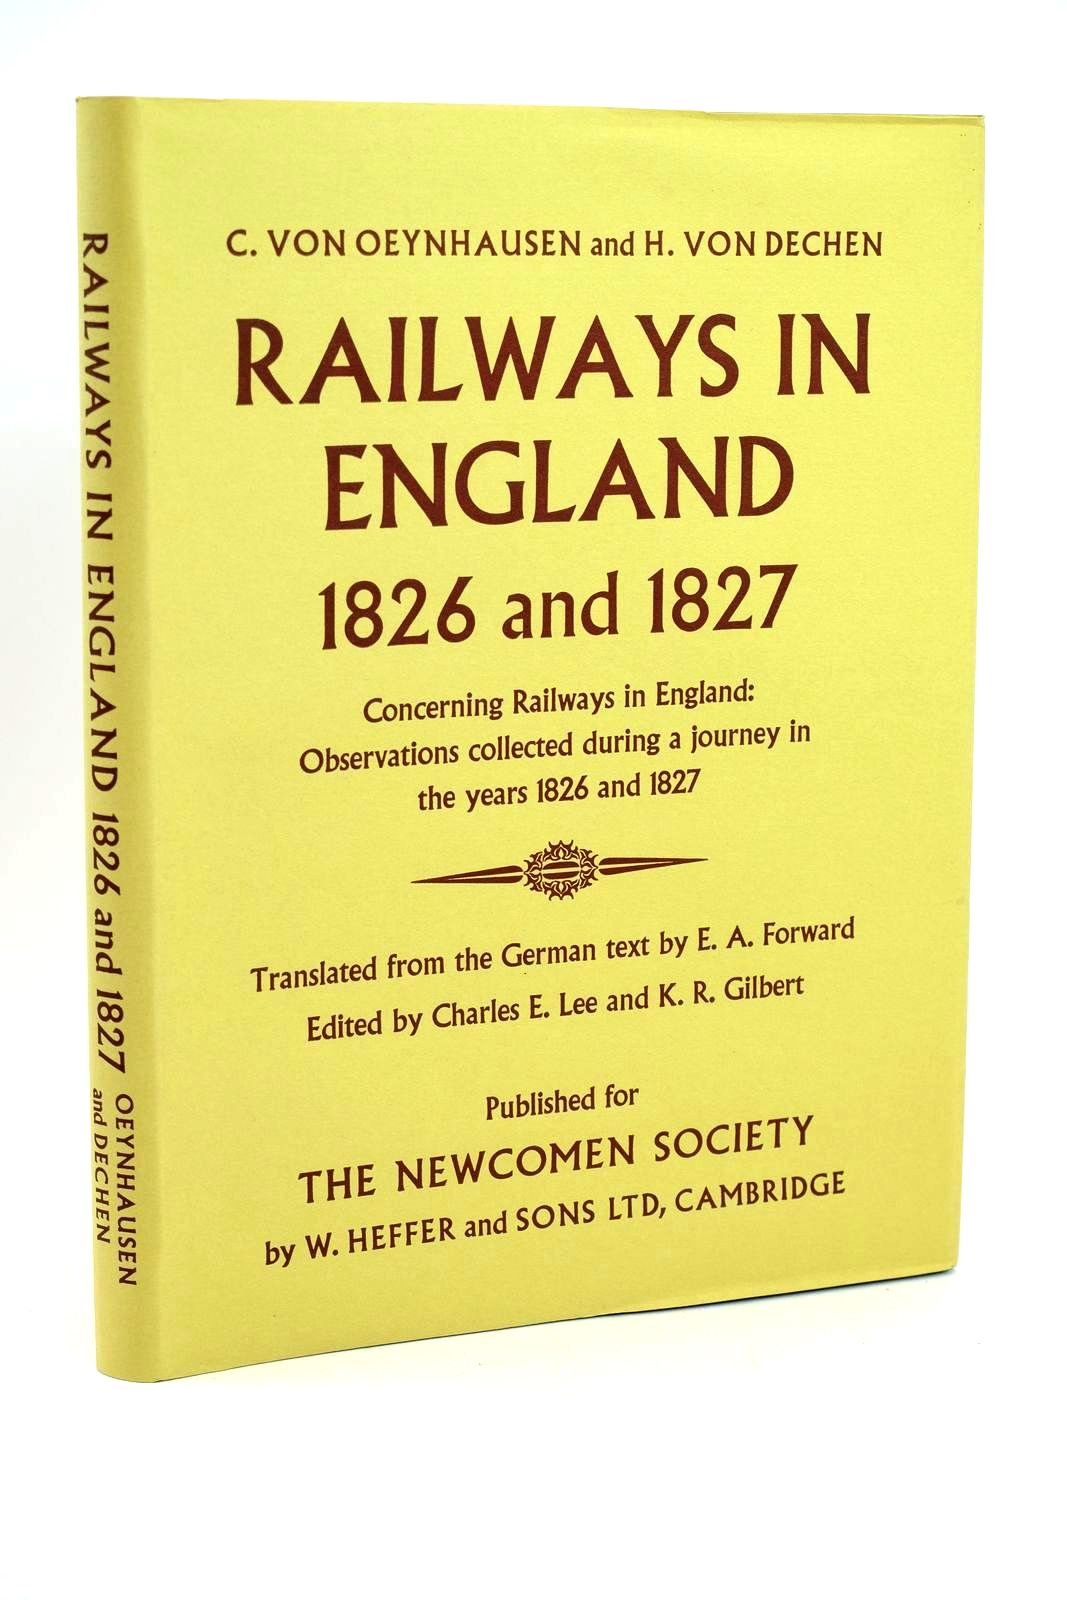 Photo of RAILWAYS IN ENGLAND 1826 AND 1827